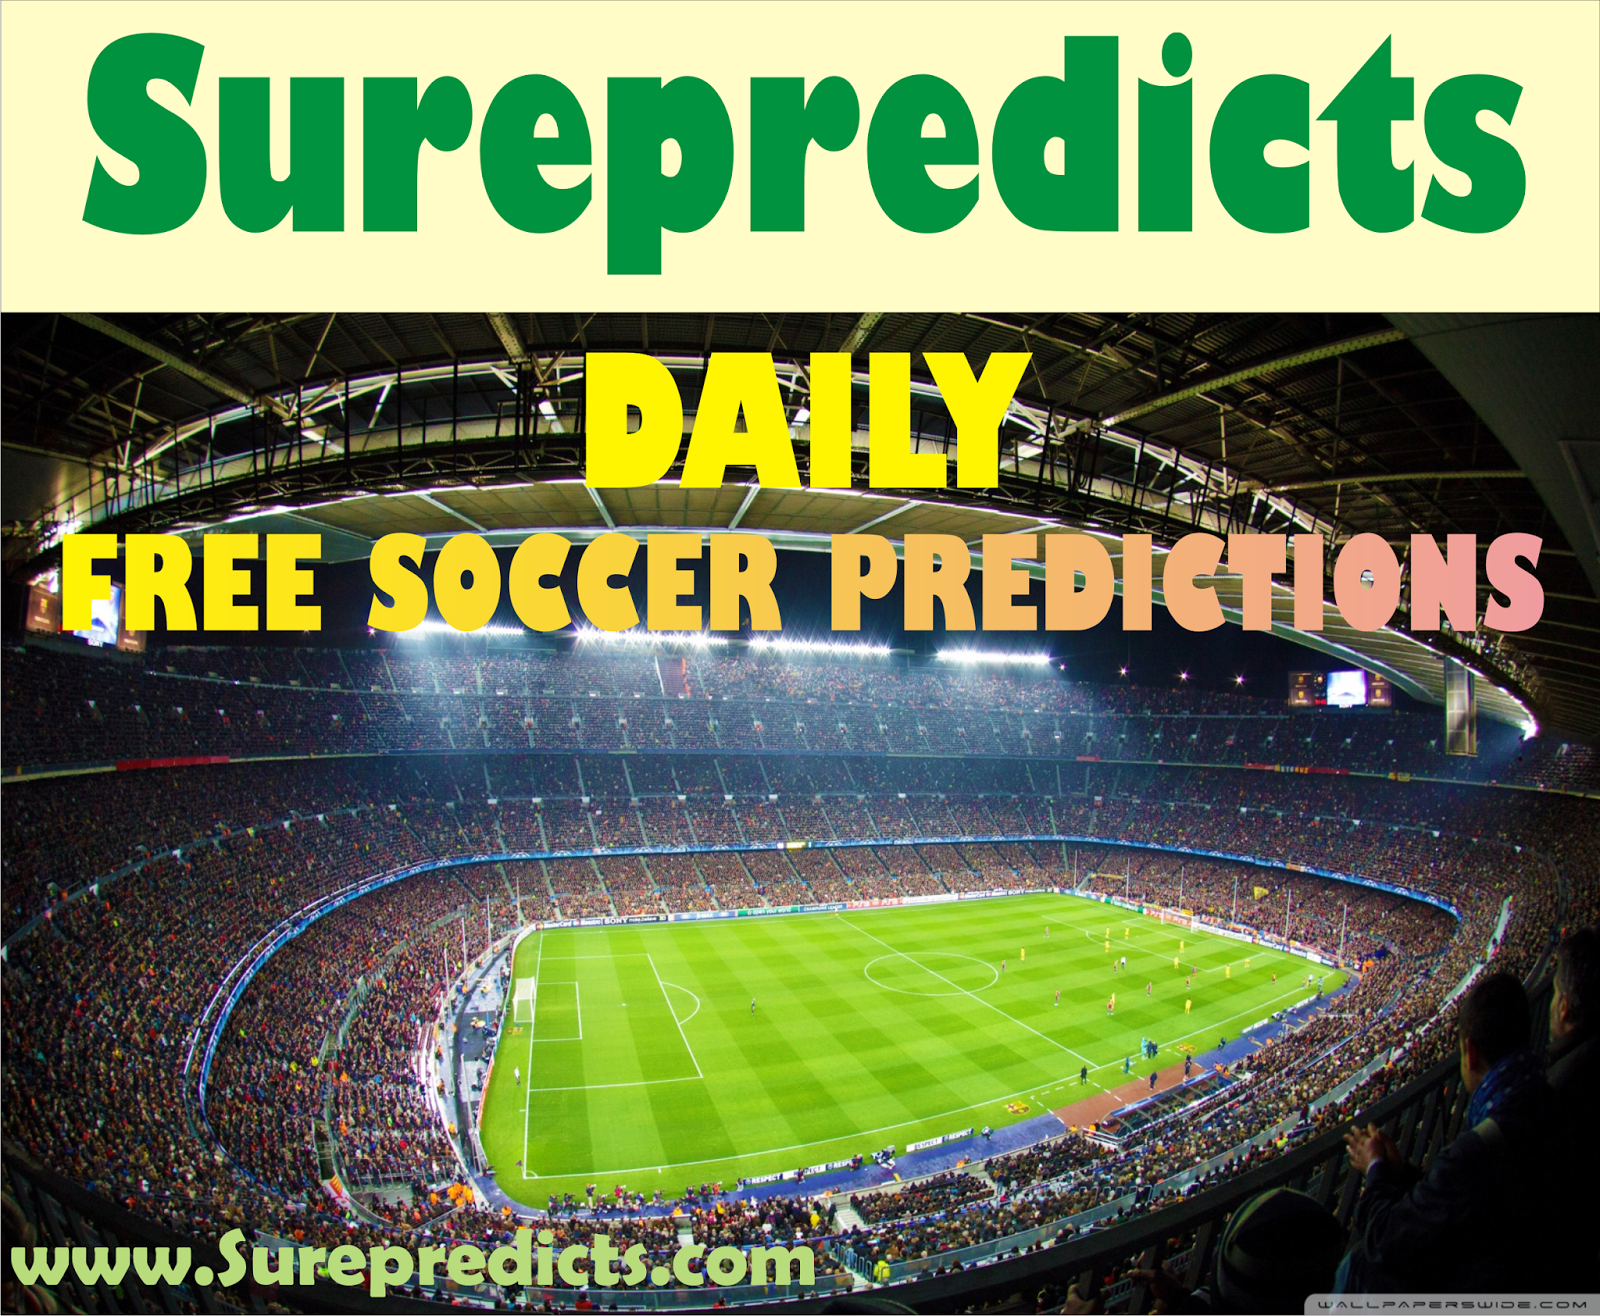 Surepredicts | Best Football Prediction Website on Feedspot - Rss Feed